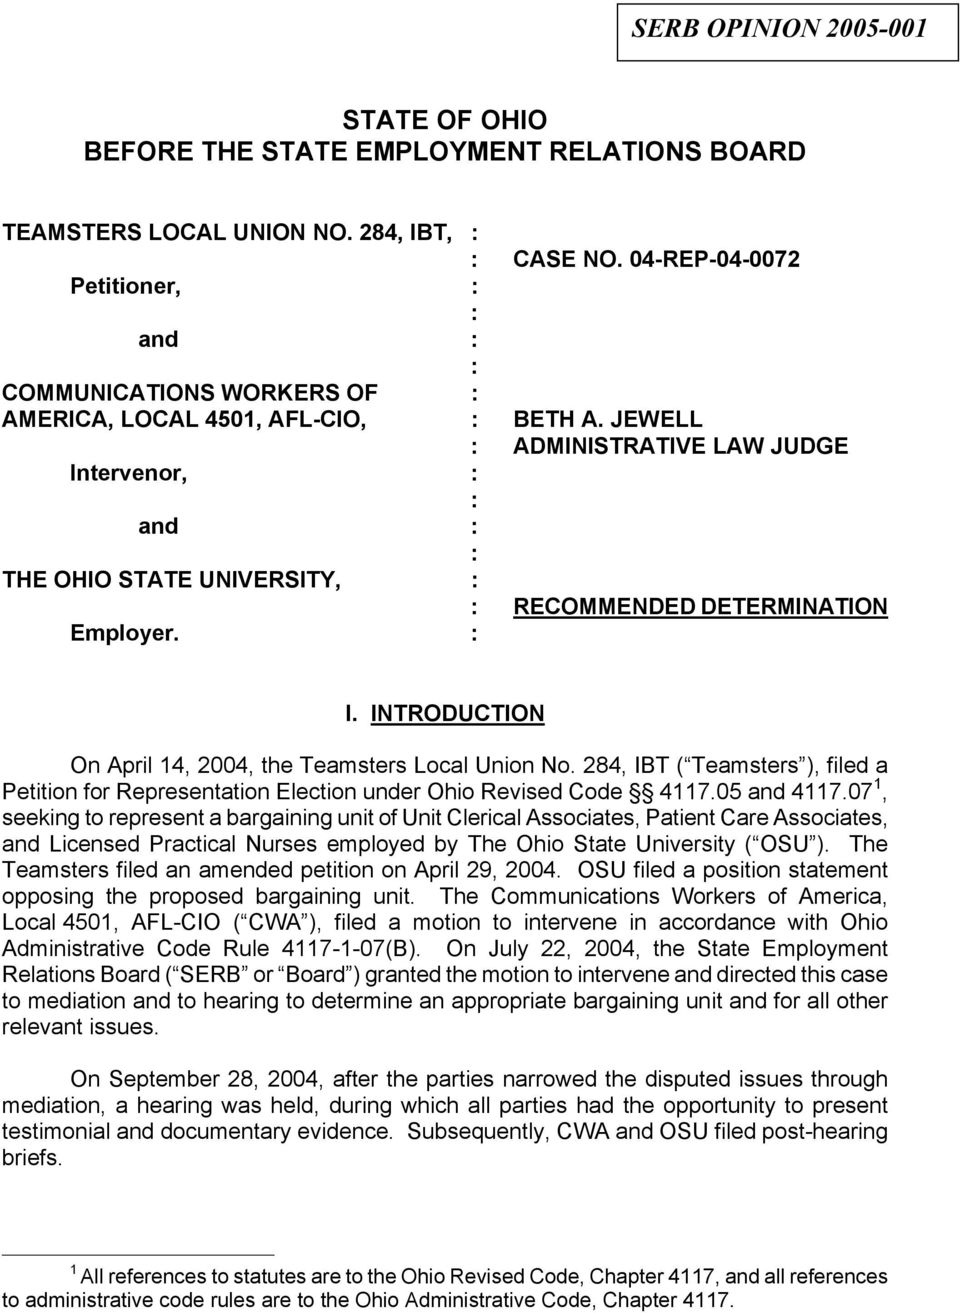 JEWELL : ADMINISTRATIVE LAW JUDGE Intervenor, : : and : : THE OHIO STATE UNIVERSITY, : : RECOMMENDED DETERMINATION Employer. : I. INTRODUCTION On April 14, 2004, the Teamsters Local Union No.